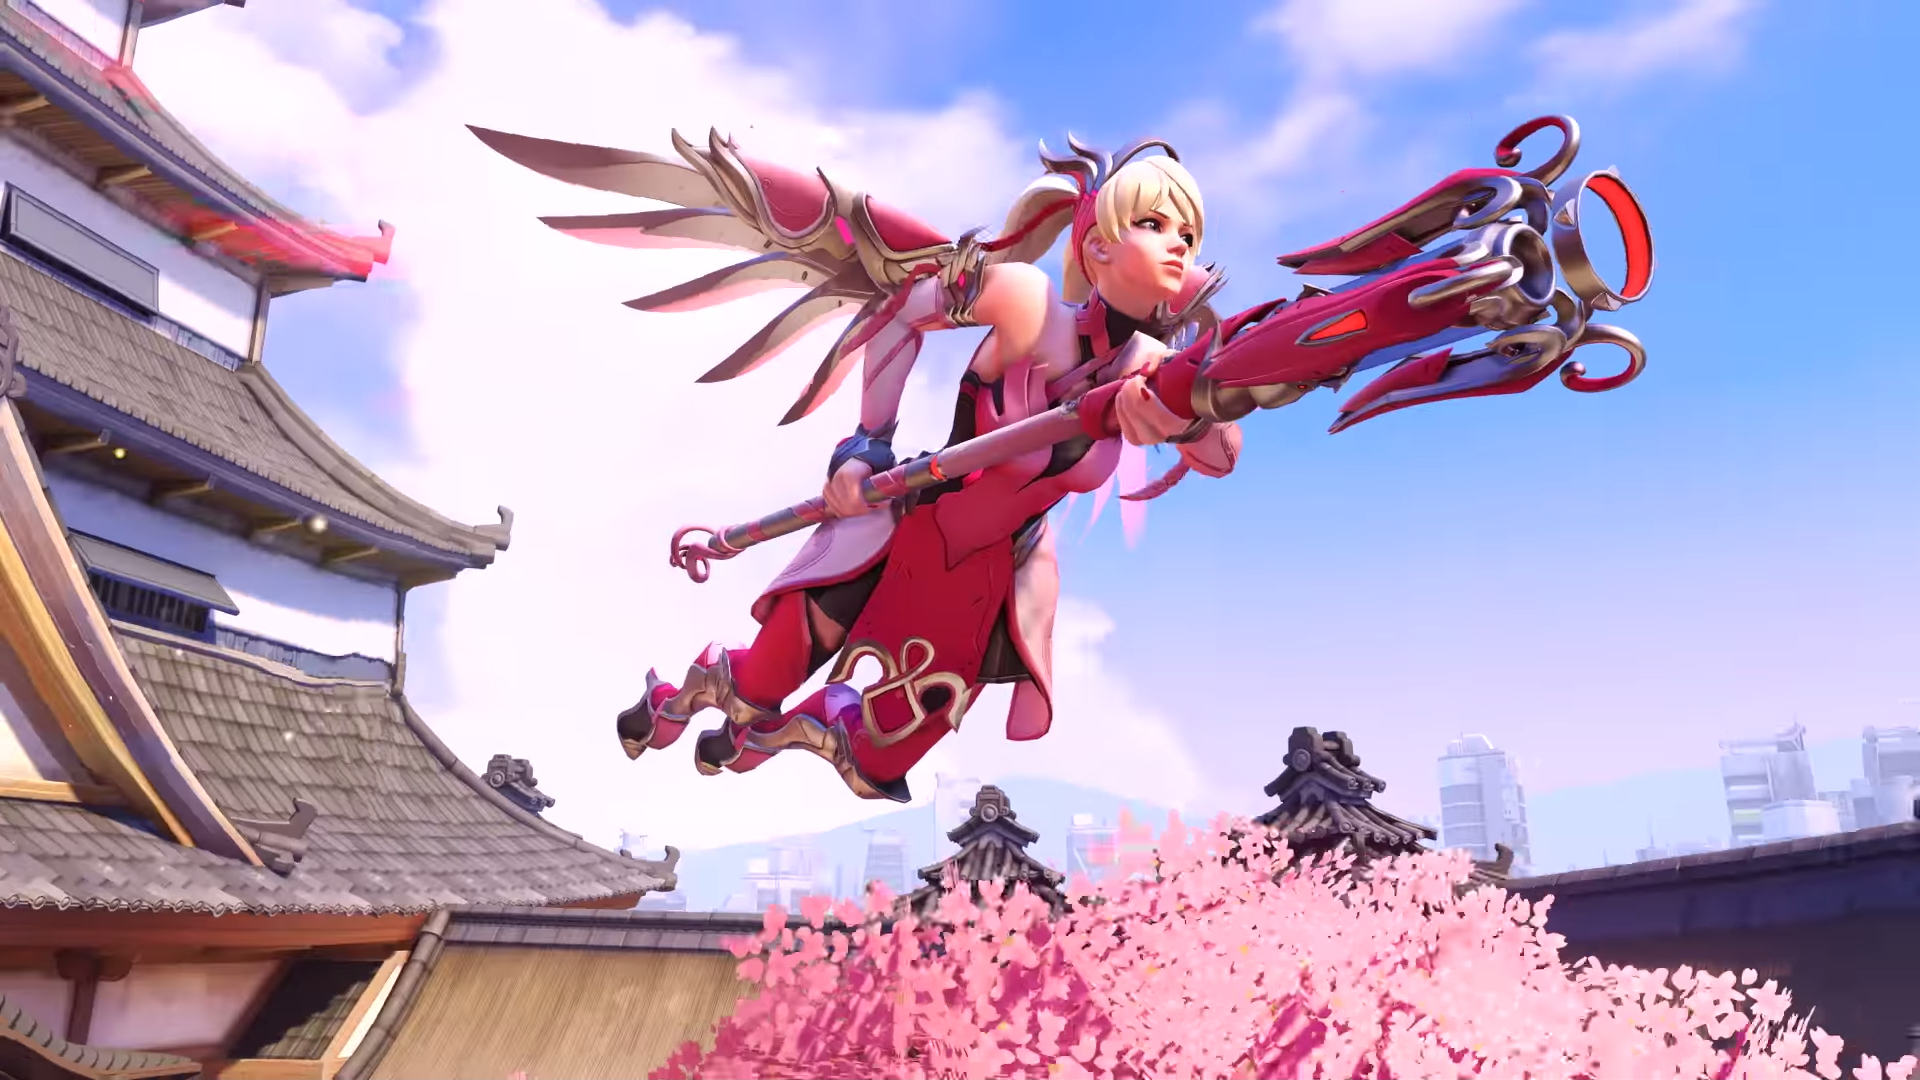 Overwatch Supports Charity with Limited-Time Pink Mercy Skin